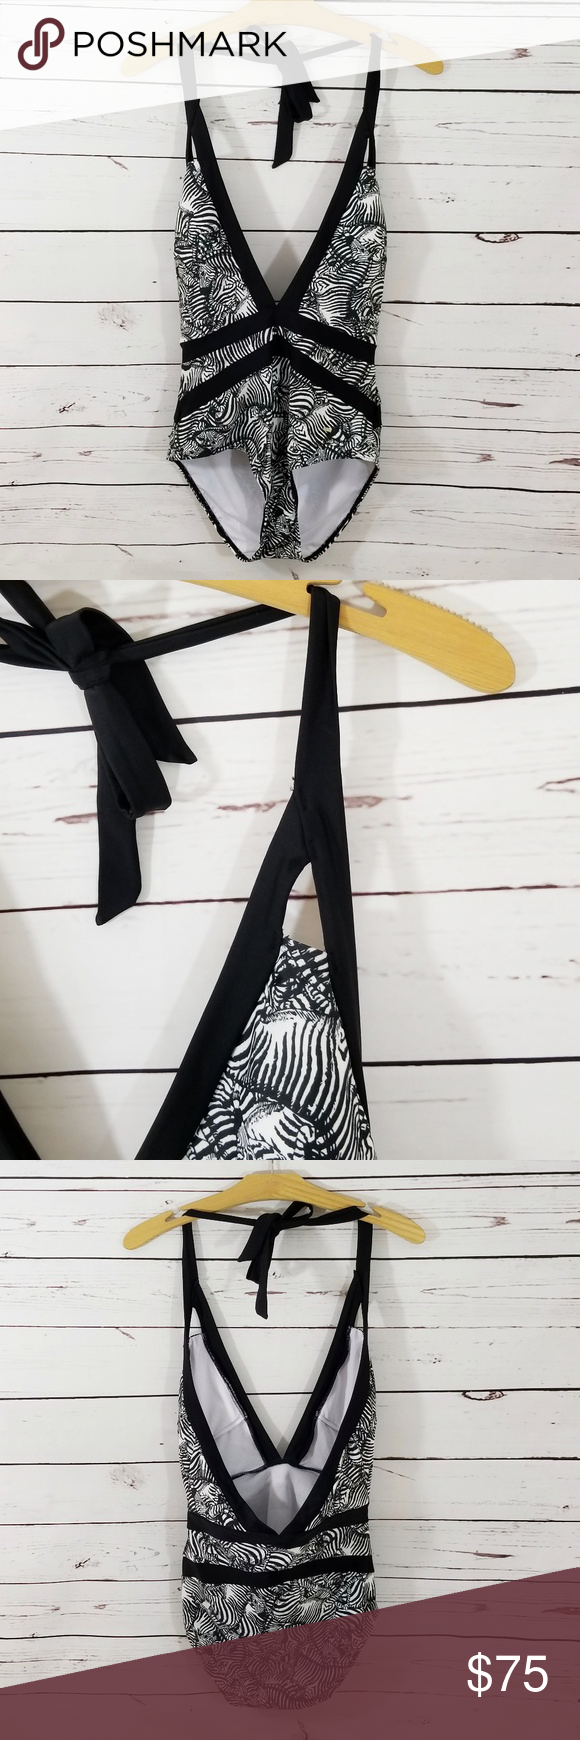 aef7d2e75c9b4 Ted Baker Meirian Zebra Print One Piece Swimsuit NWT - Brand new. Hygienic  liner intact. Ted Baker one piece swimsuit. Zebra print. Removable pads.